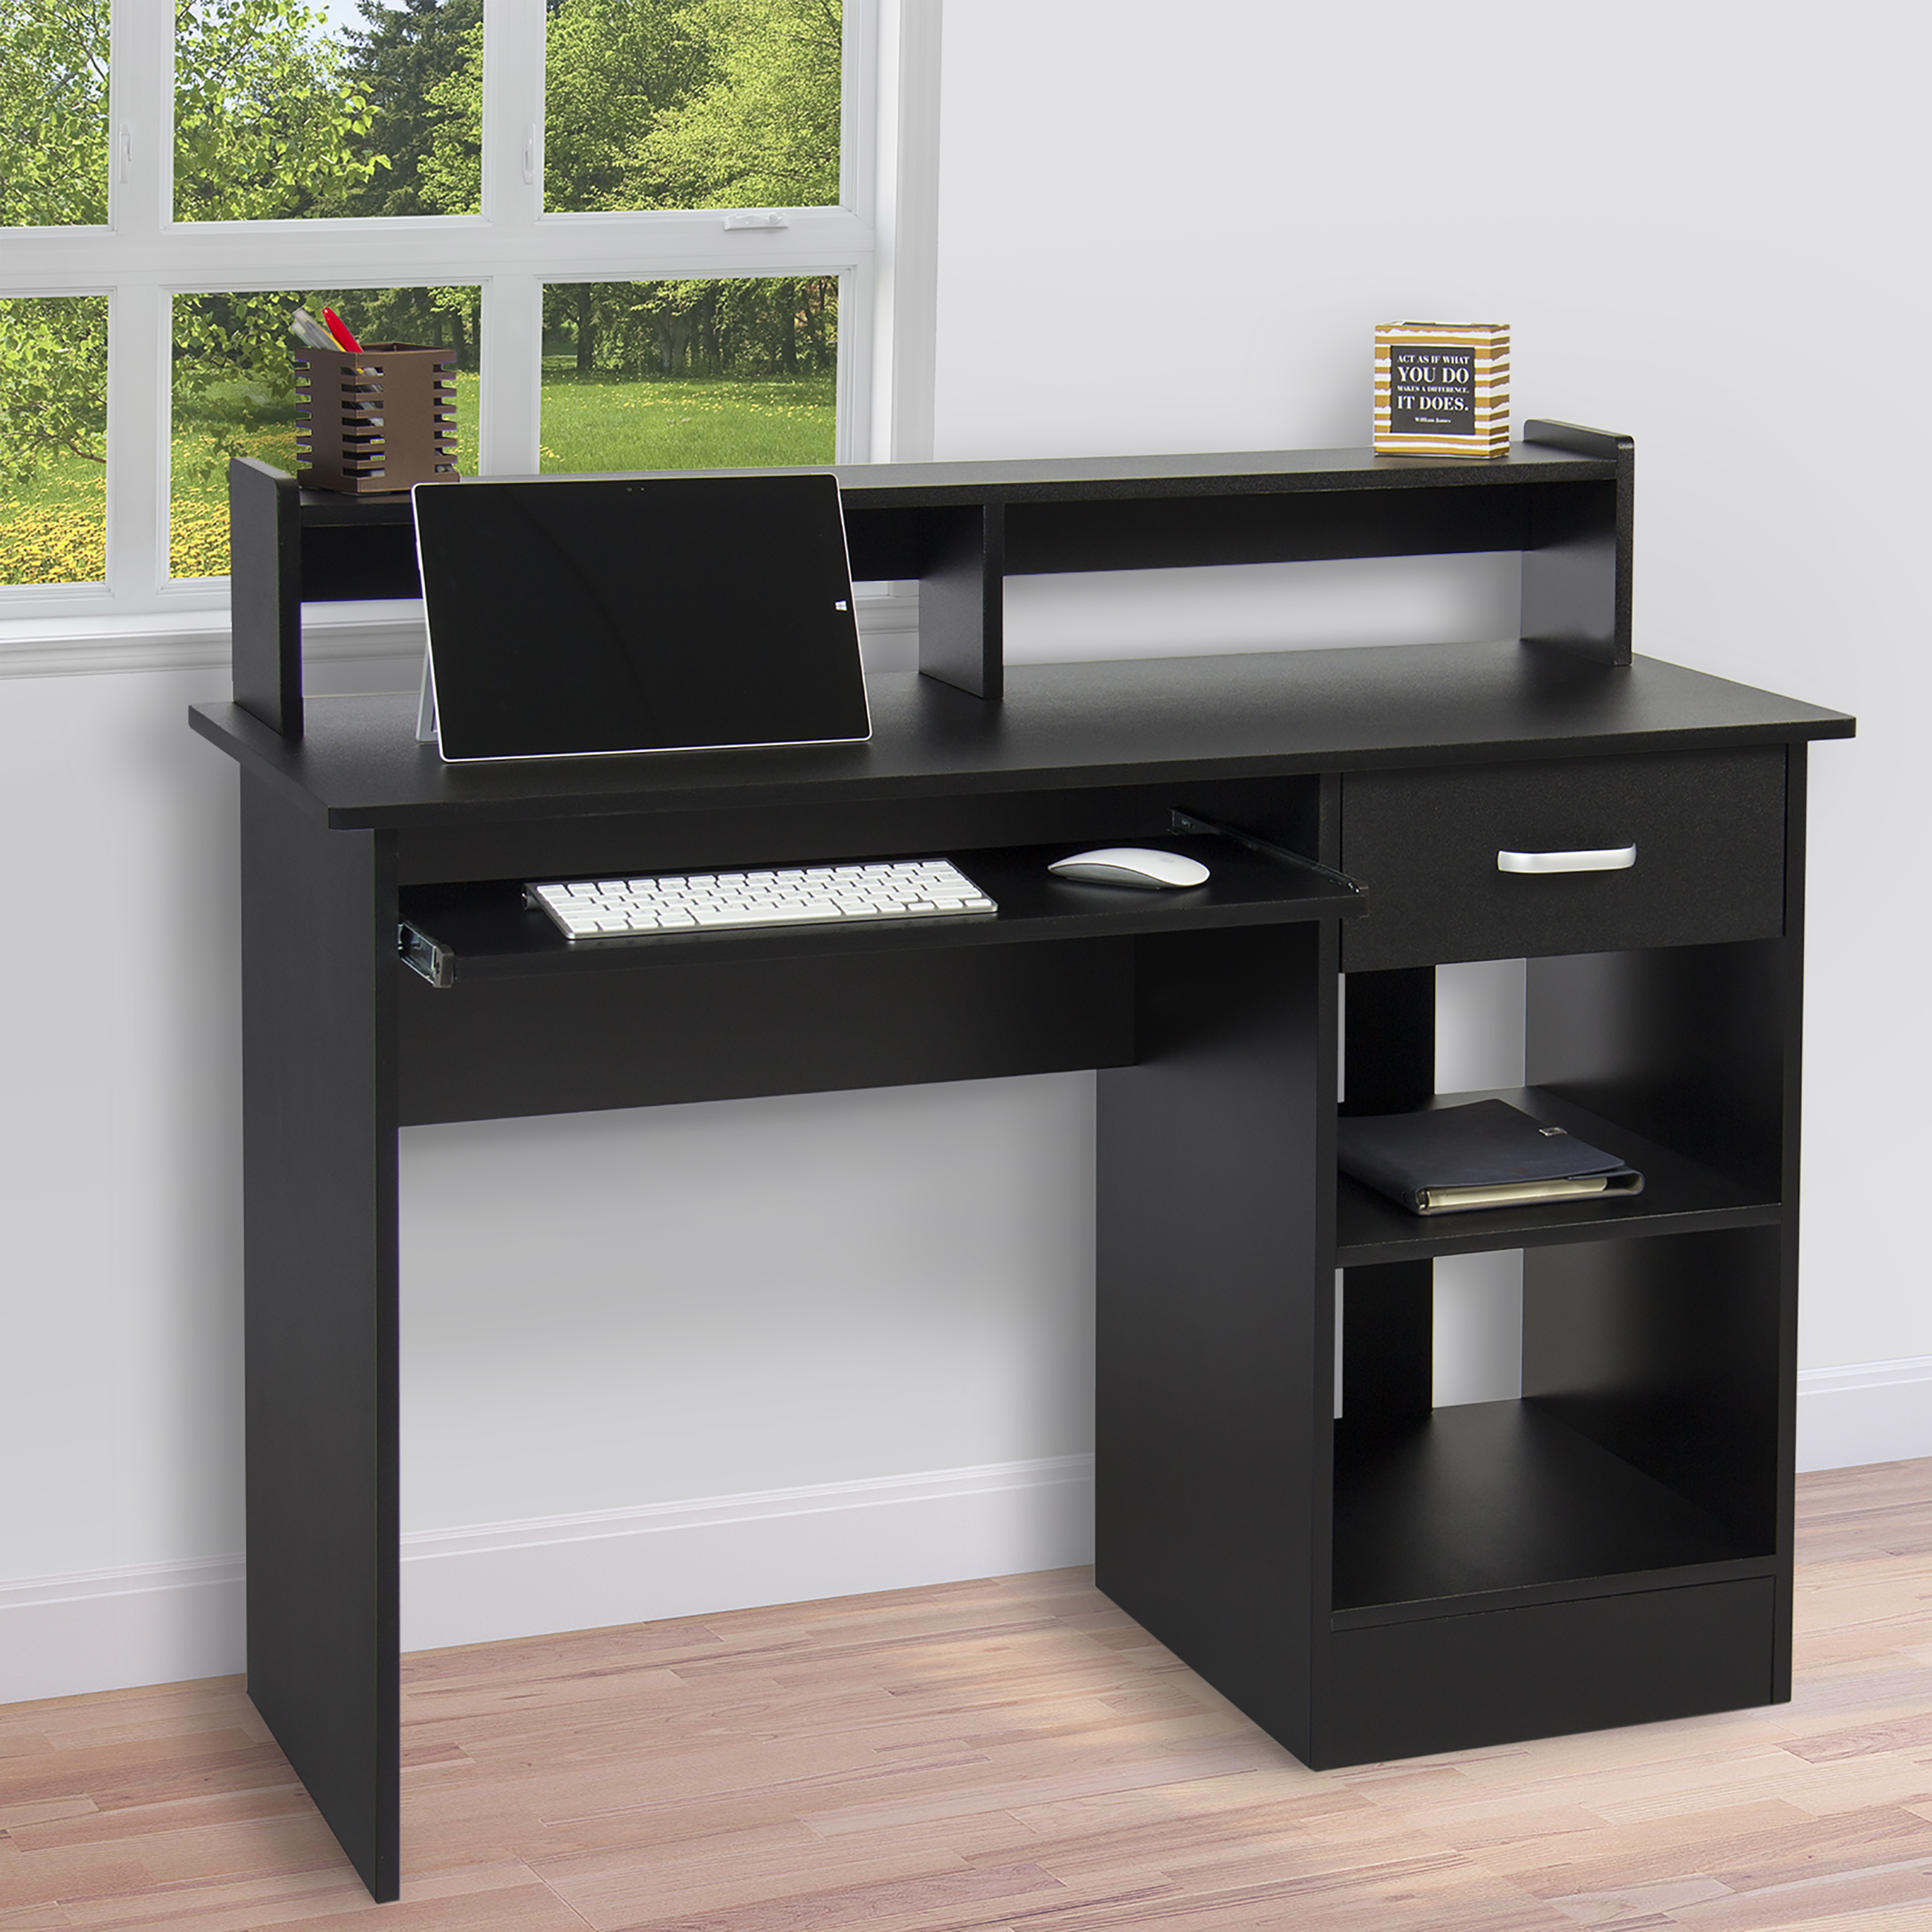 Best Choice S Computer Desk Home Laptop Table College Office Furniture Work Station Black Com